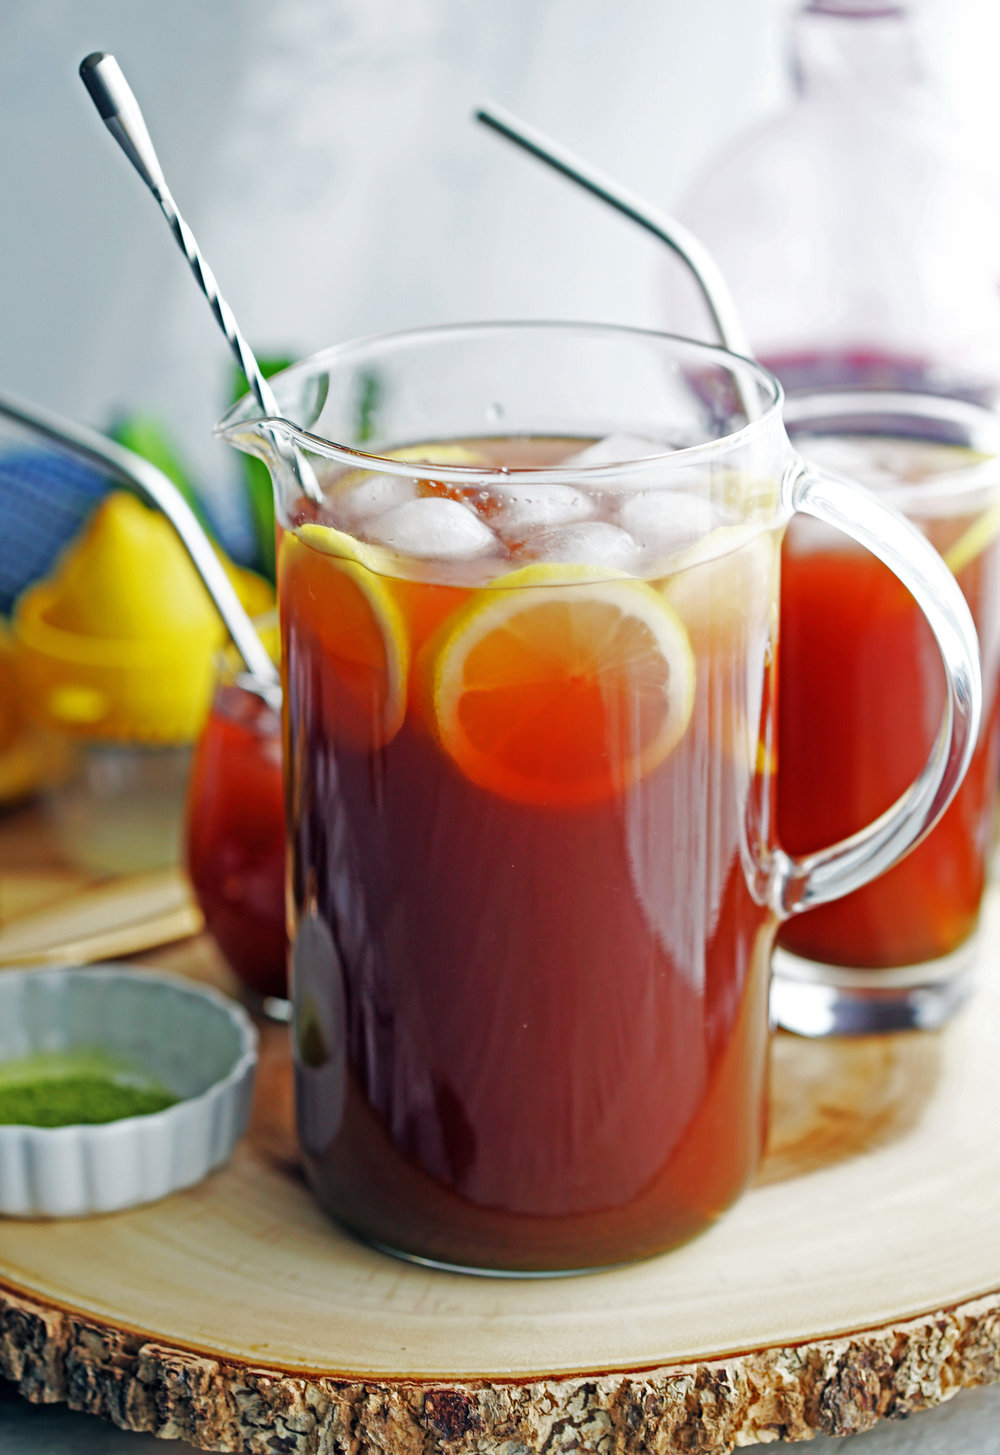 A large glass pitcher full of pomegranate matcha iced tea with lemon slices and ice.